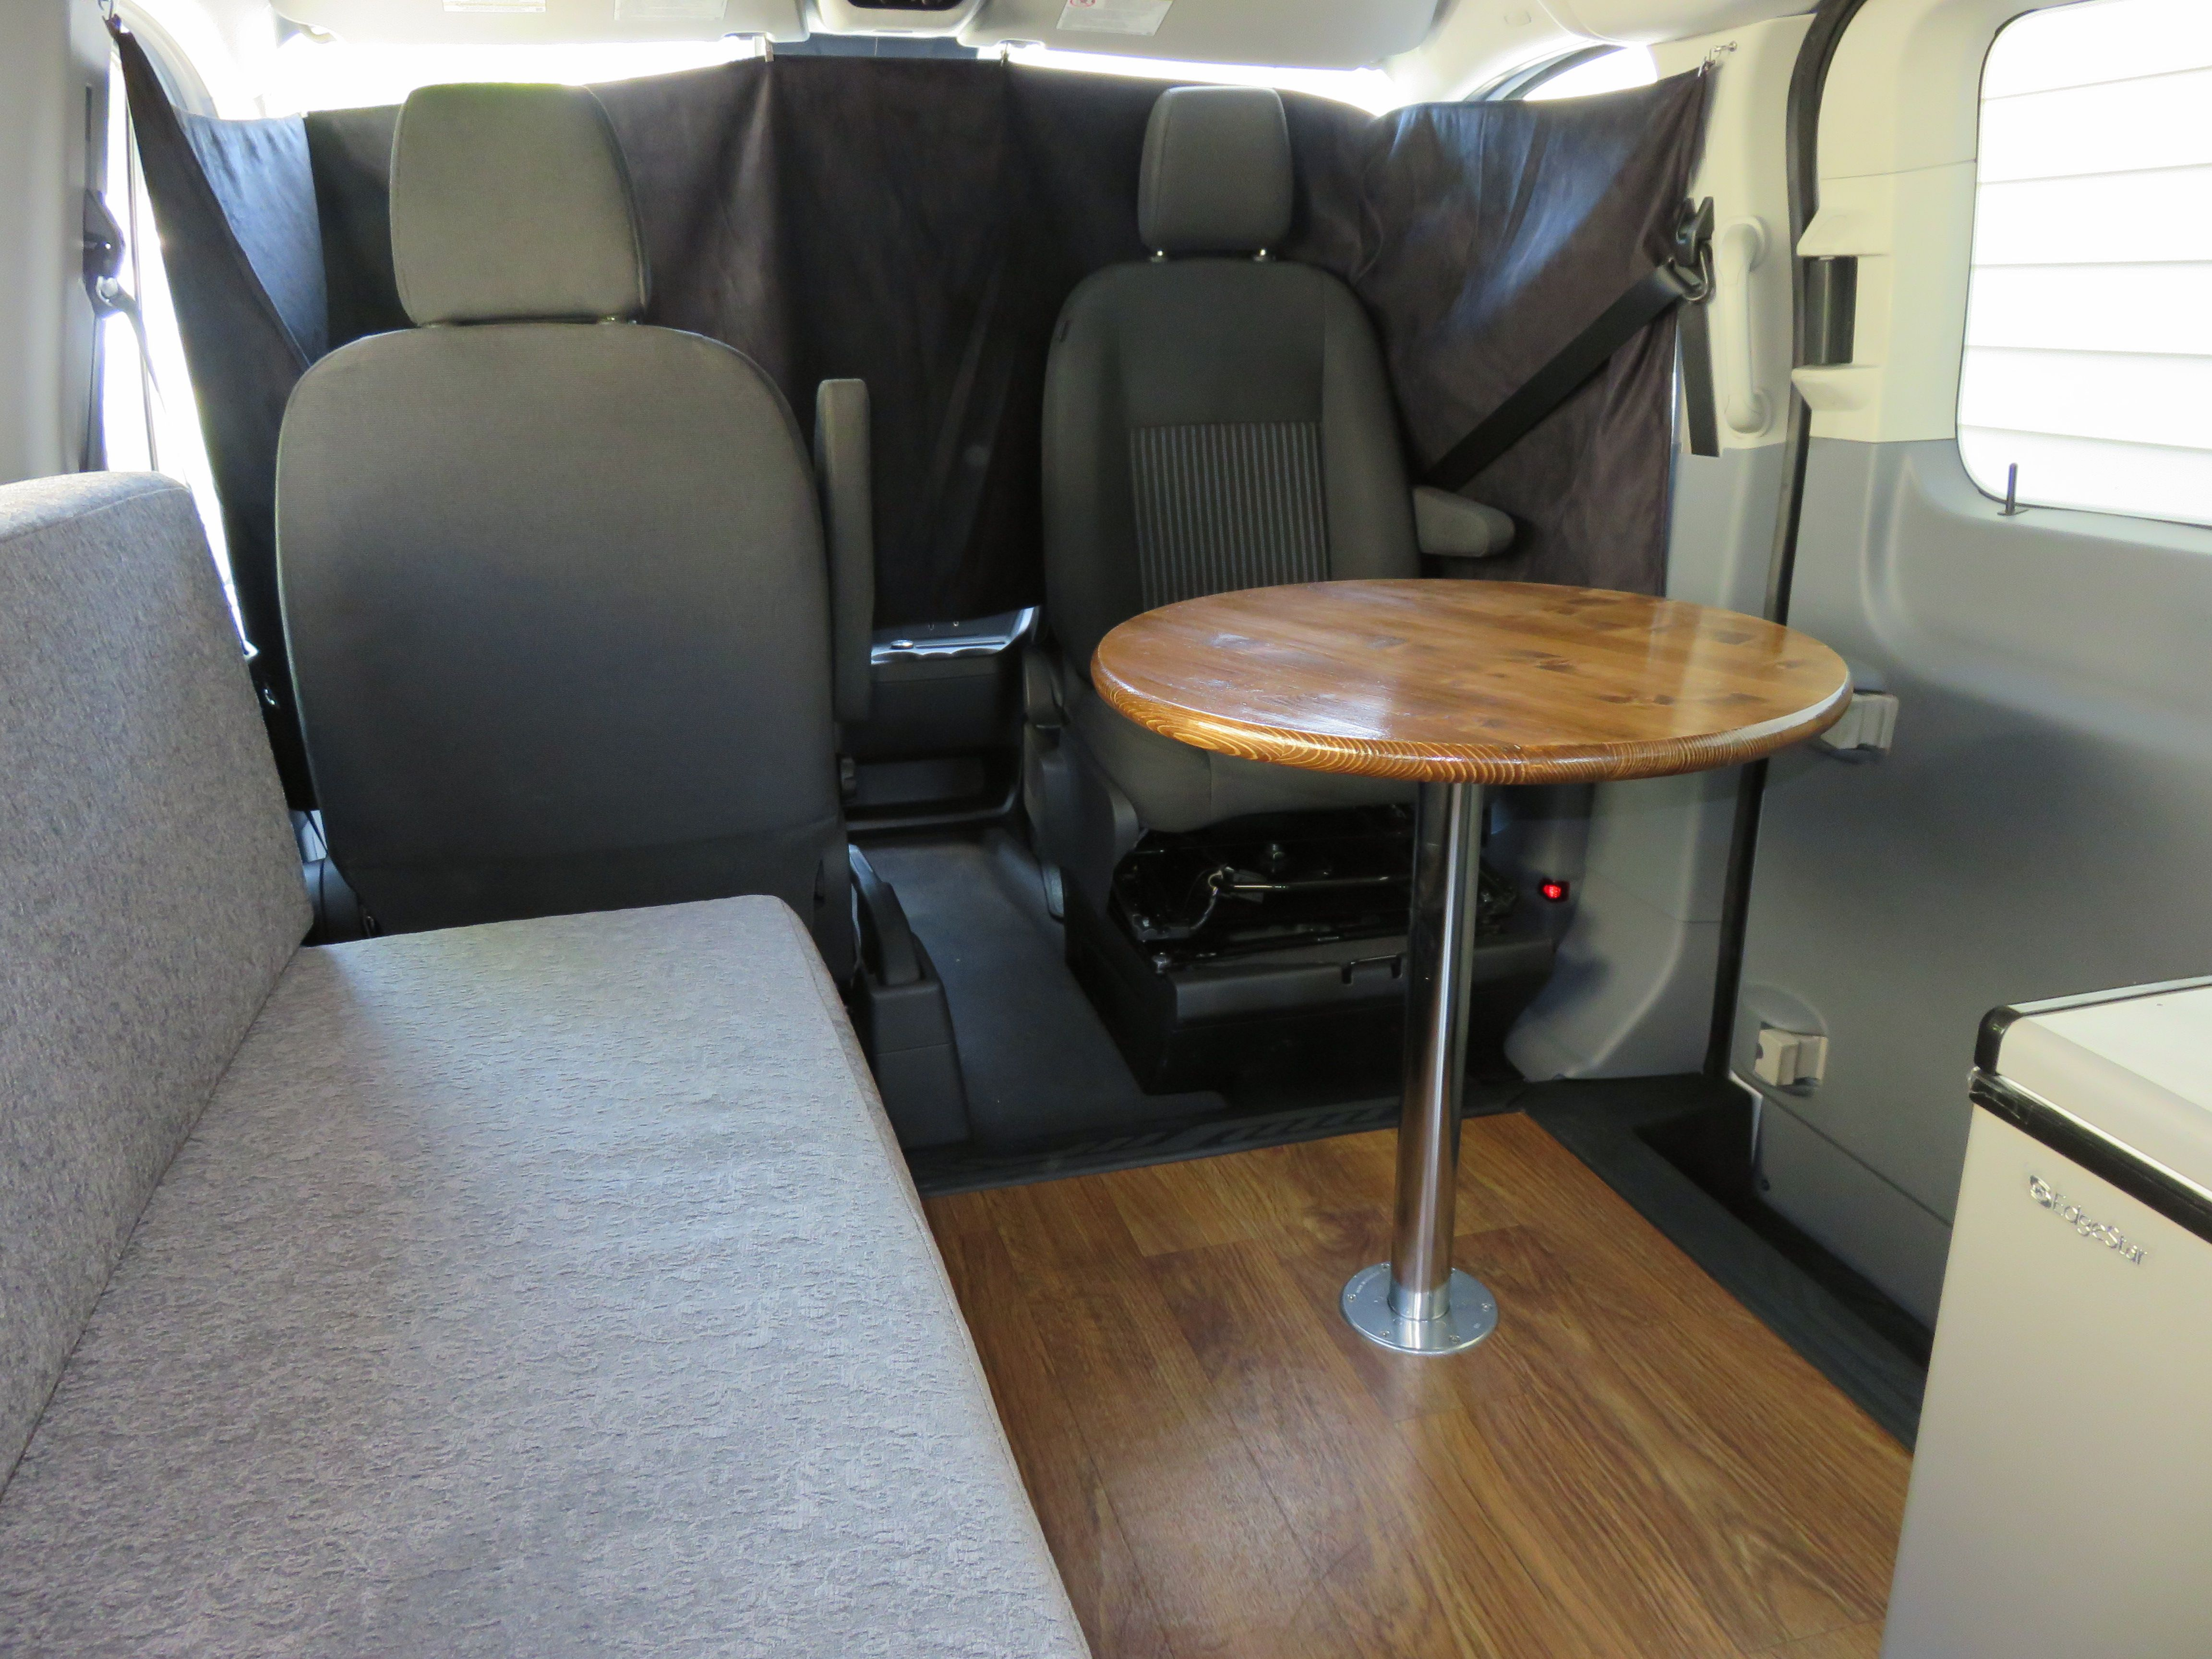 Swivel Seat And Pedestal Table In 2017 Ford Transit Lr